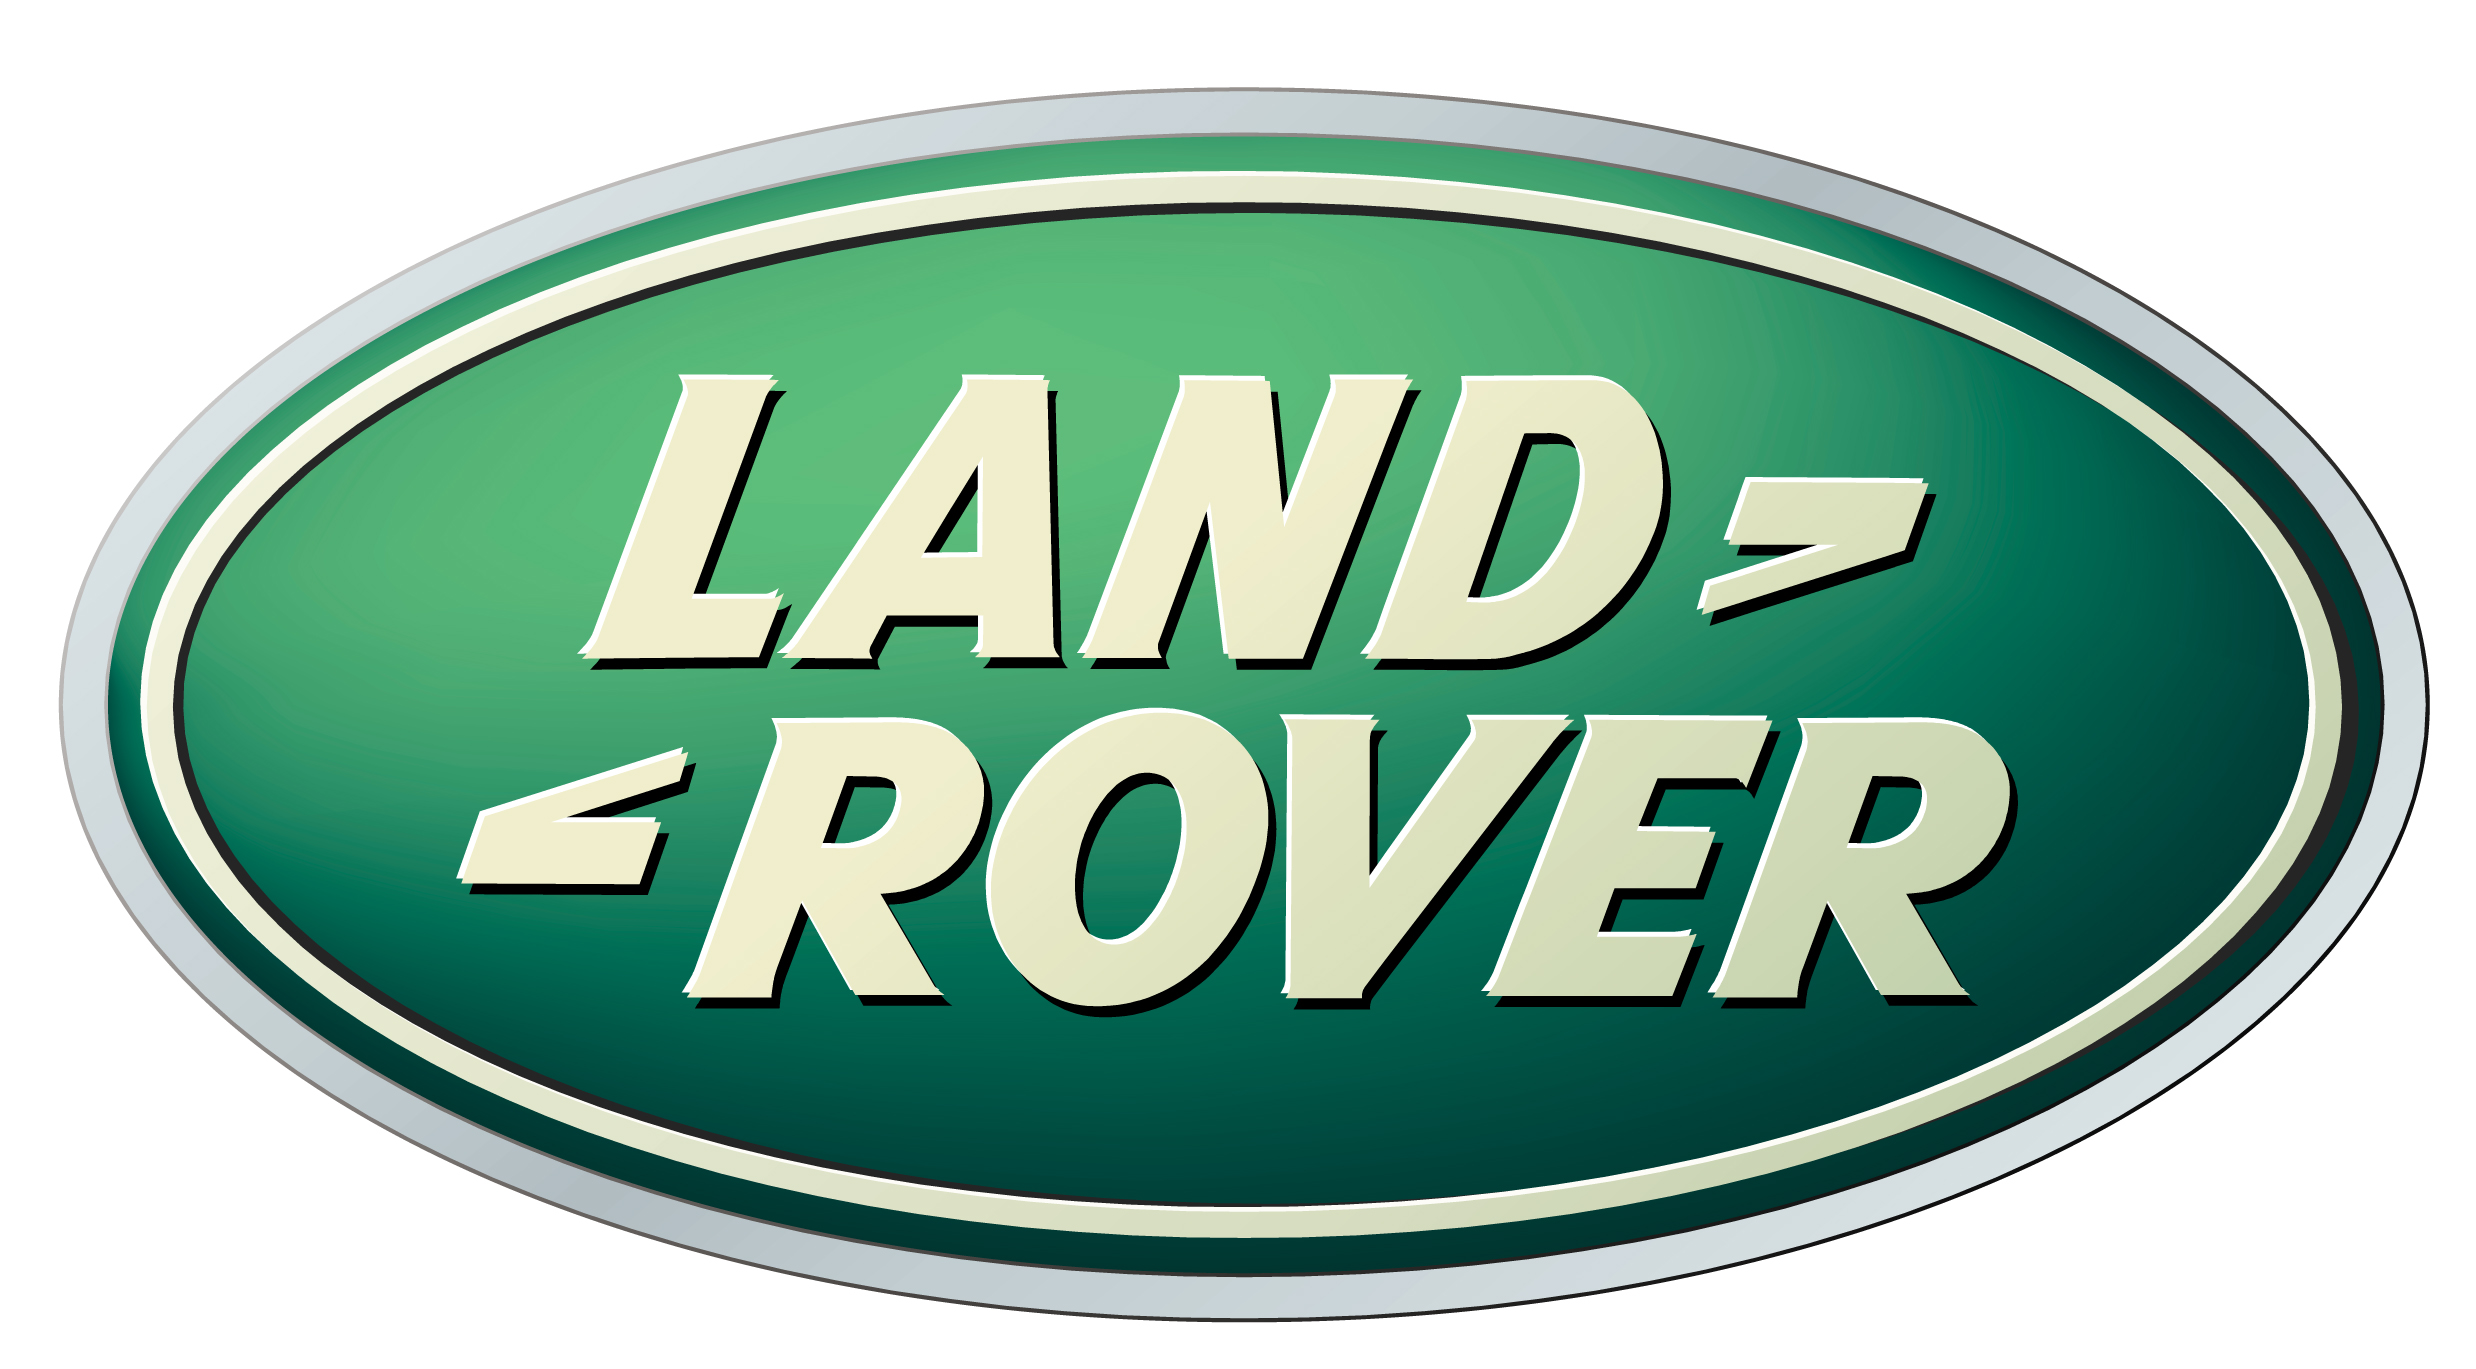 Used Land Rover Cincinnati